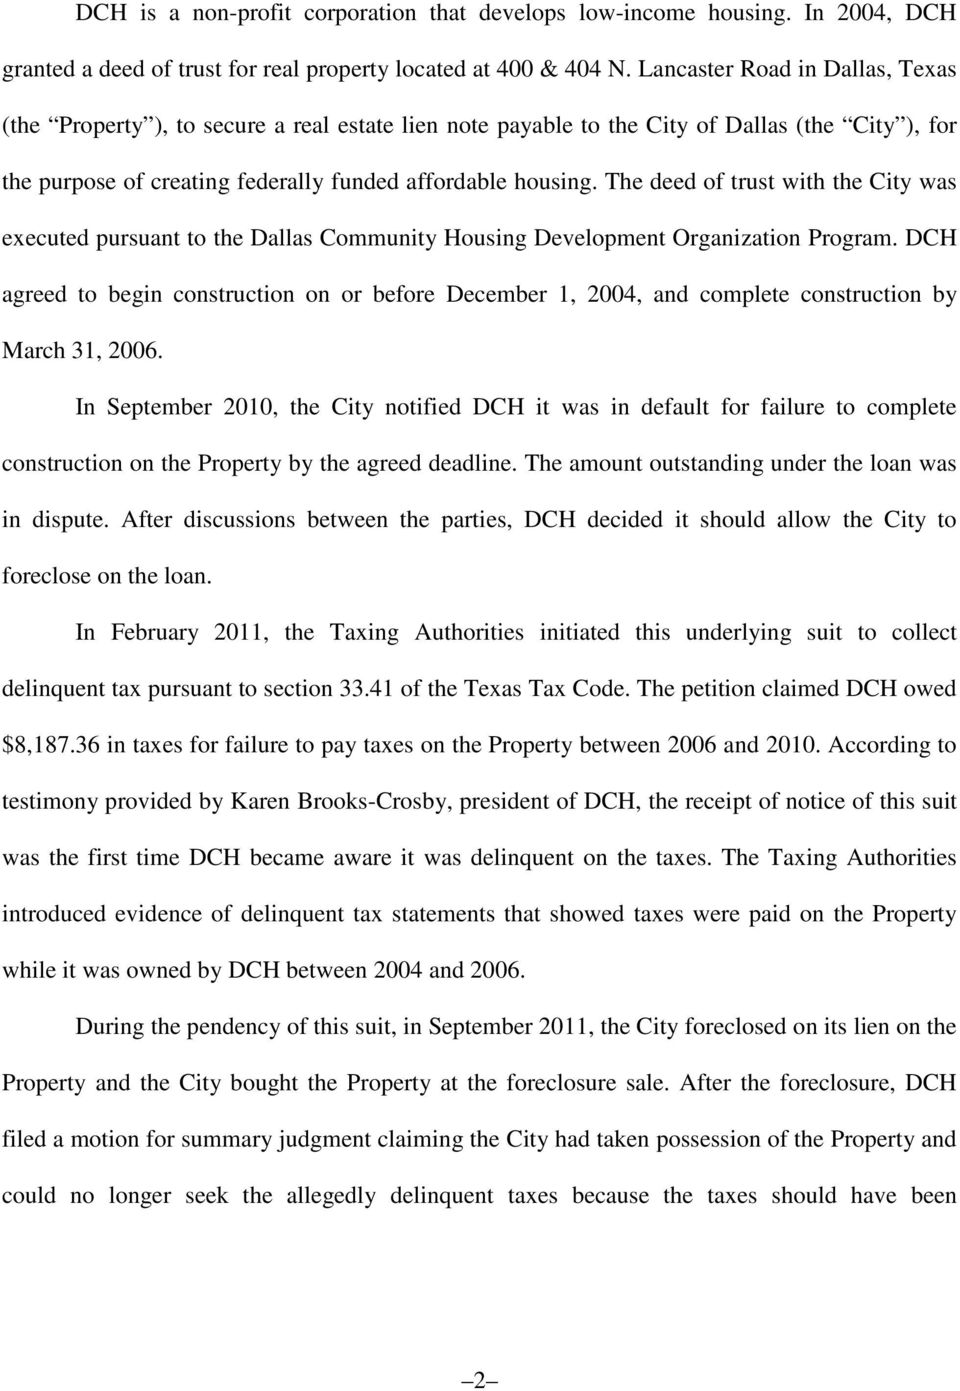 The deed of trust with the City was executed pursuant to the Dallas Community Housing Development Organization Program.